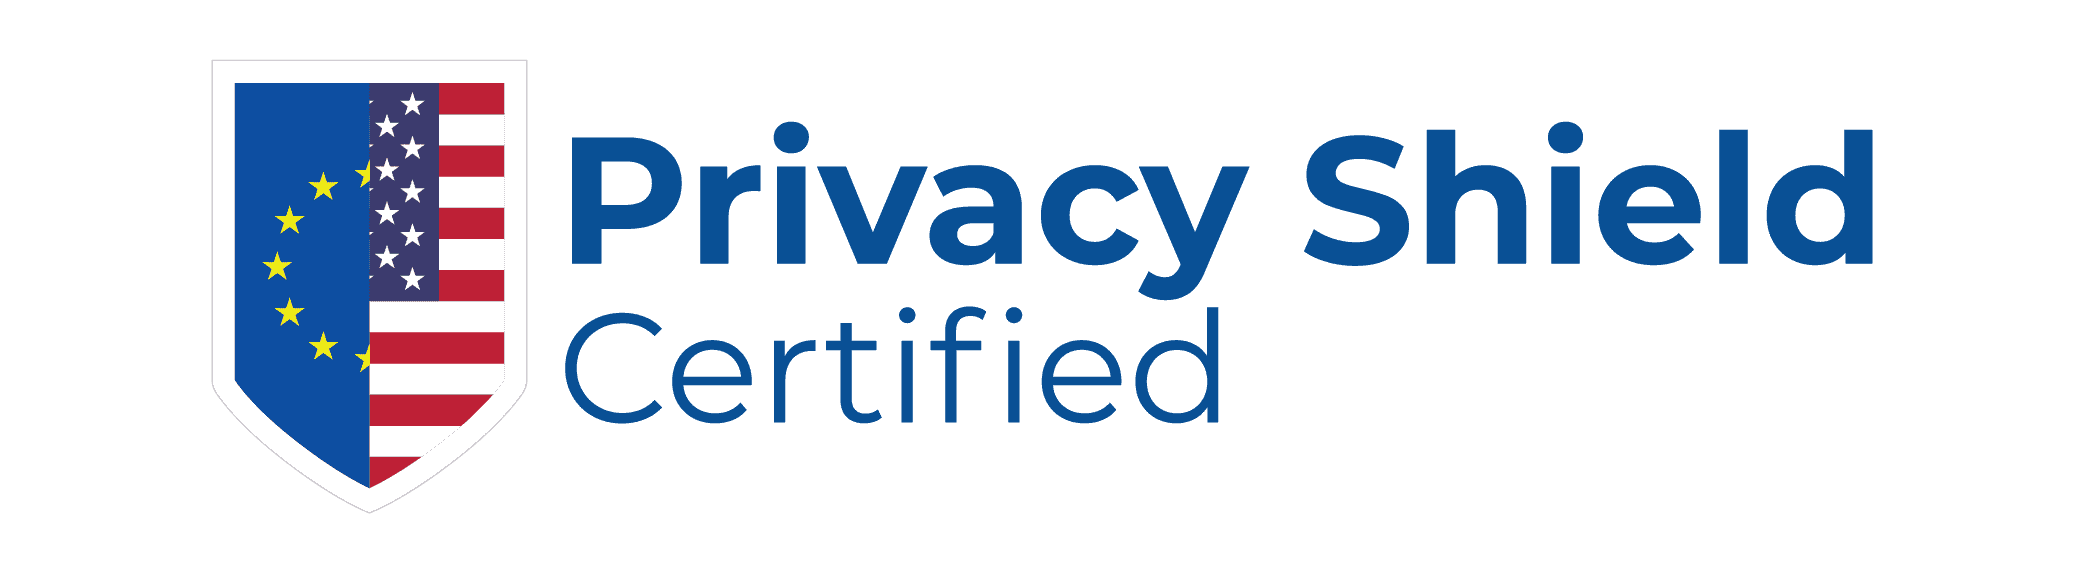 privacy-cert-shield